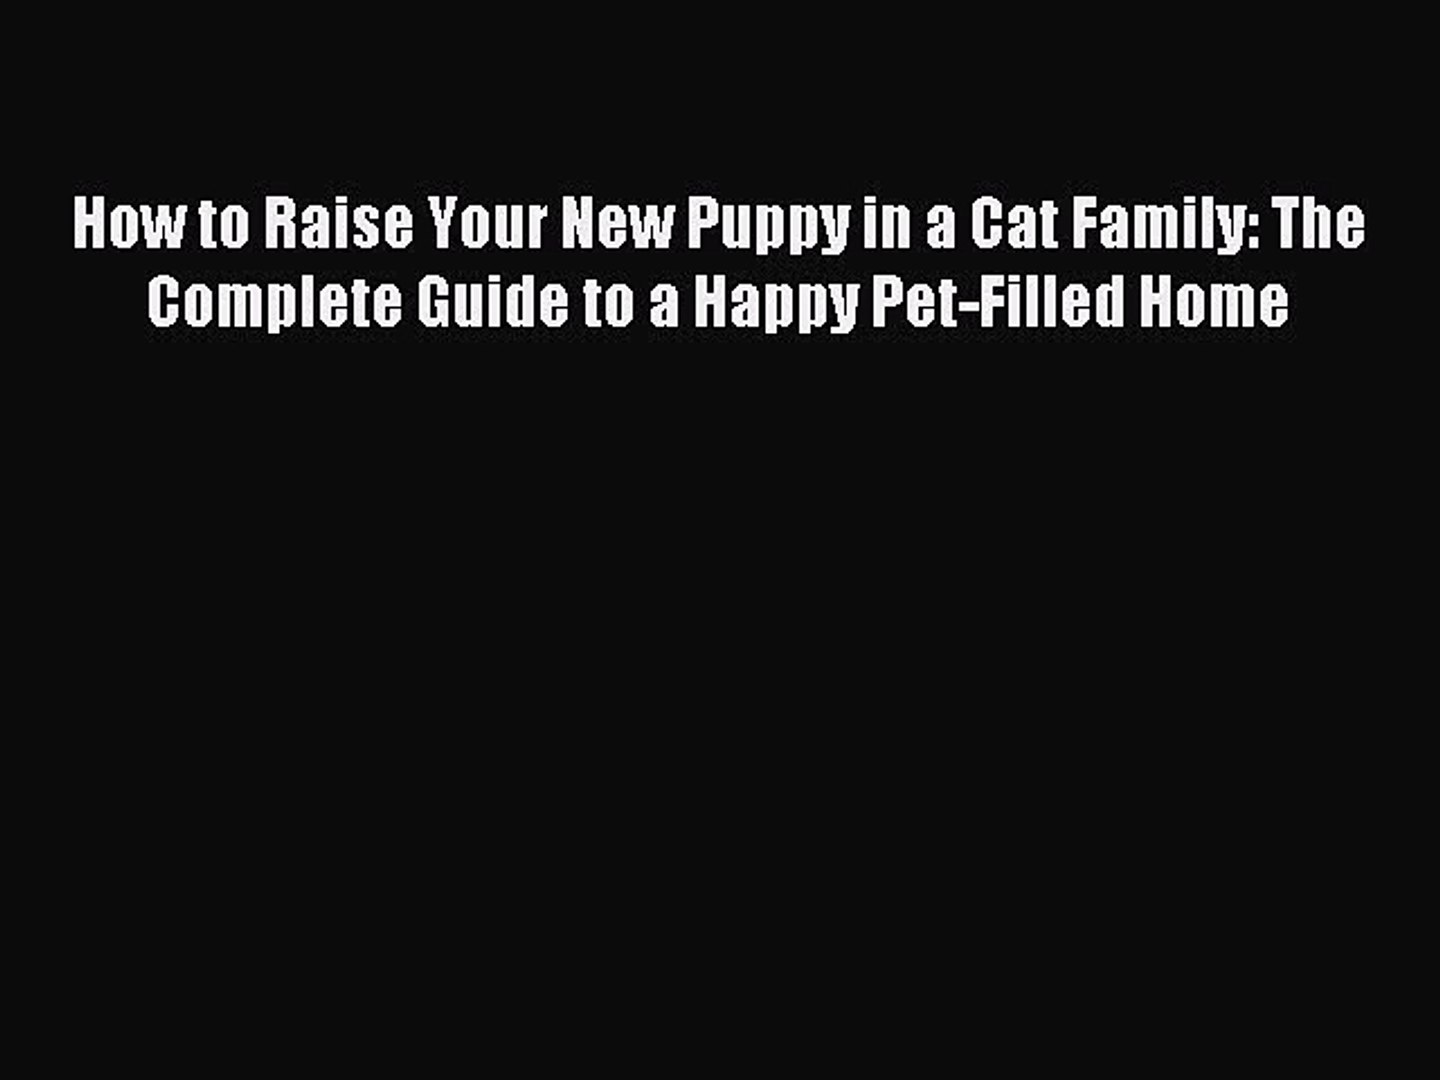 Download How to Raise Your New Puppy in a Cat Family: The Complete Guide to a Happy Pet-Filled